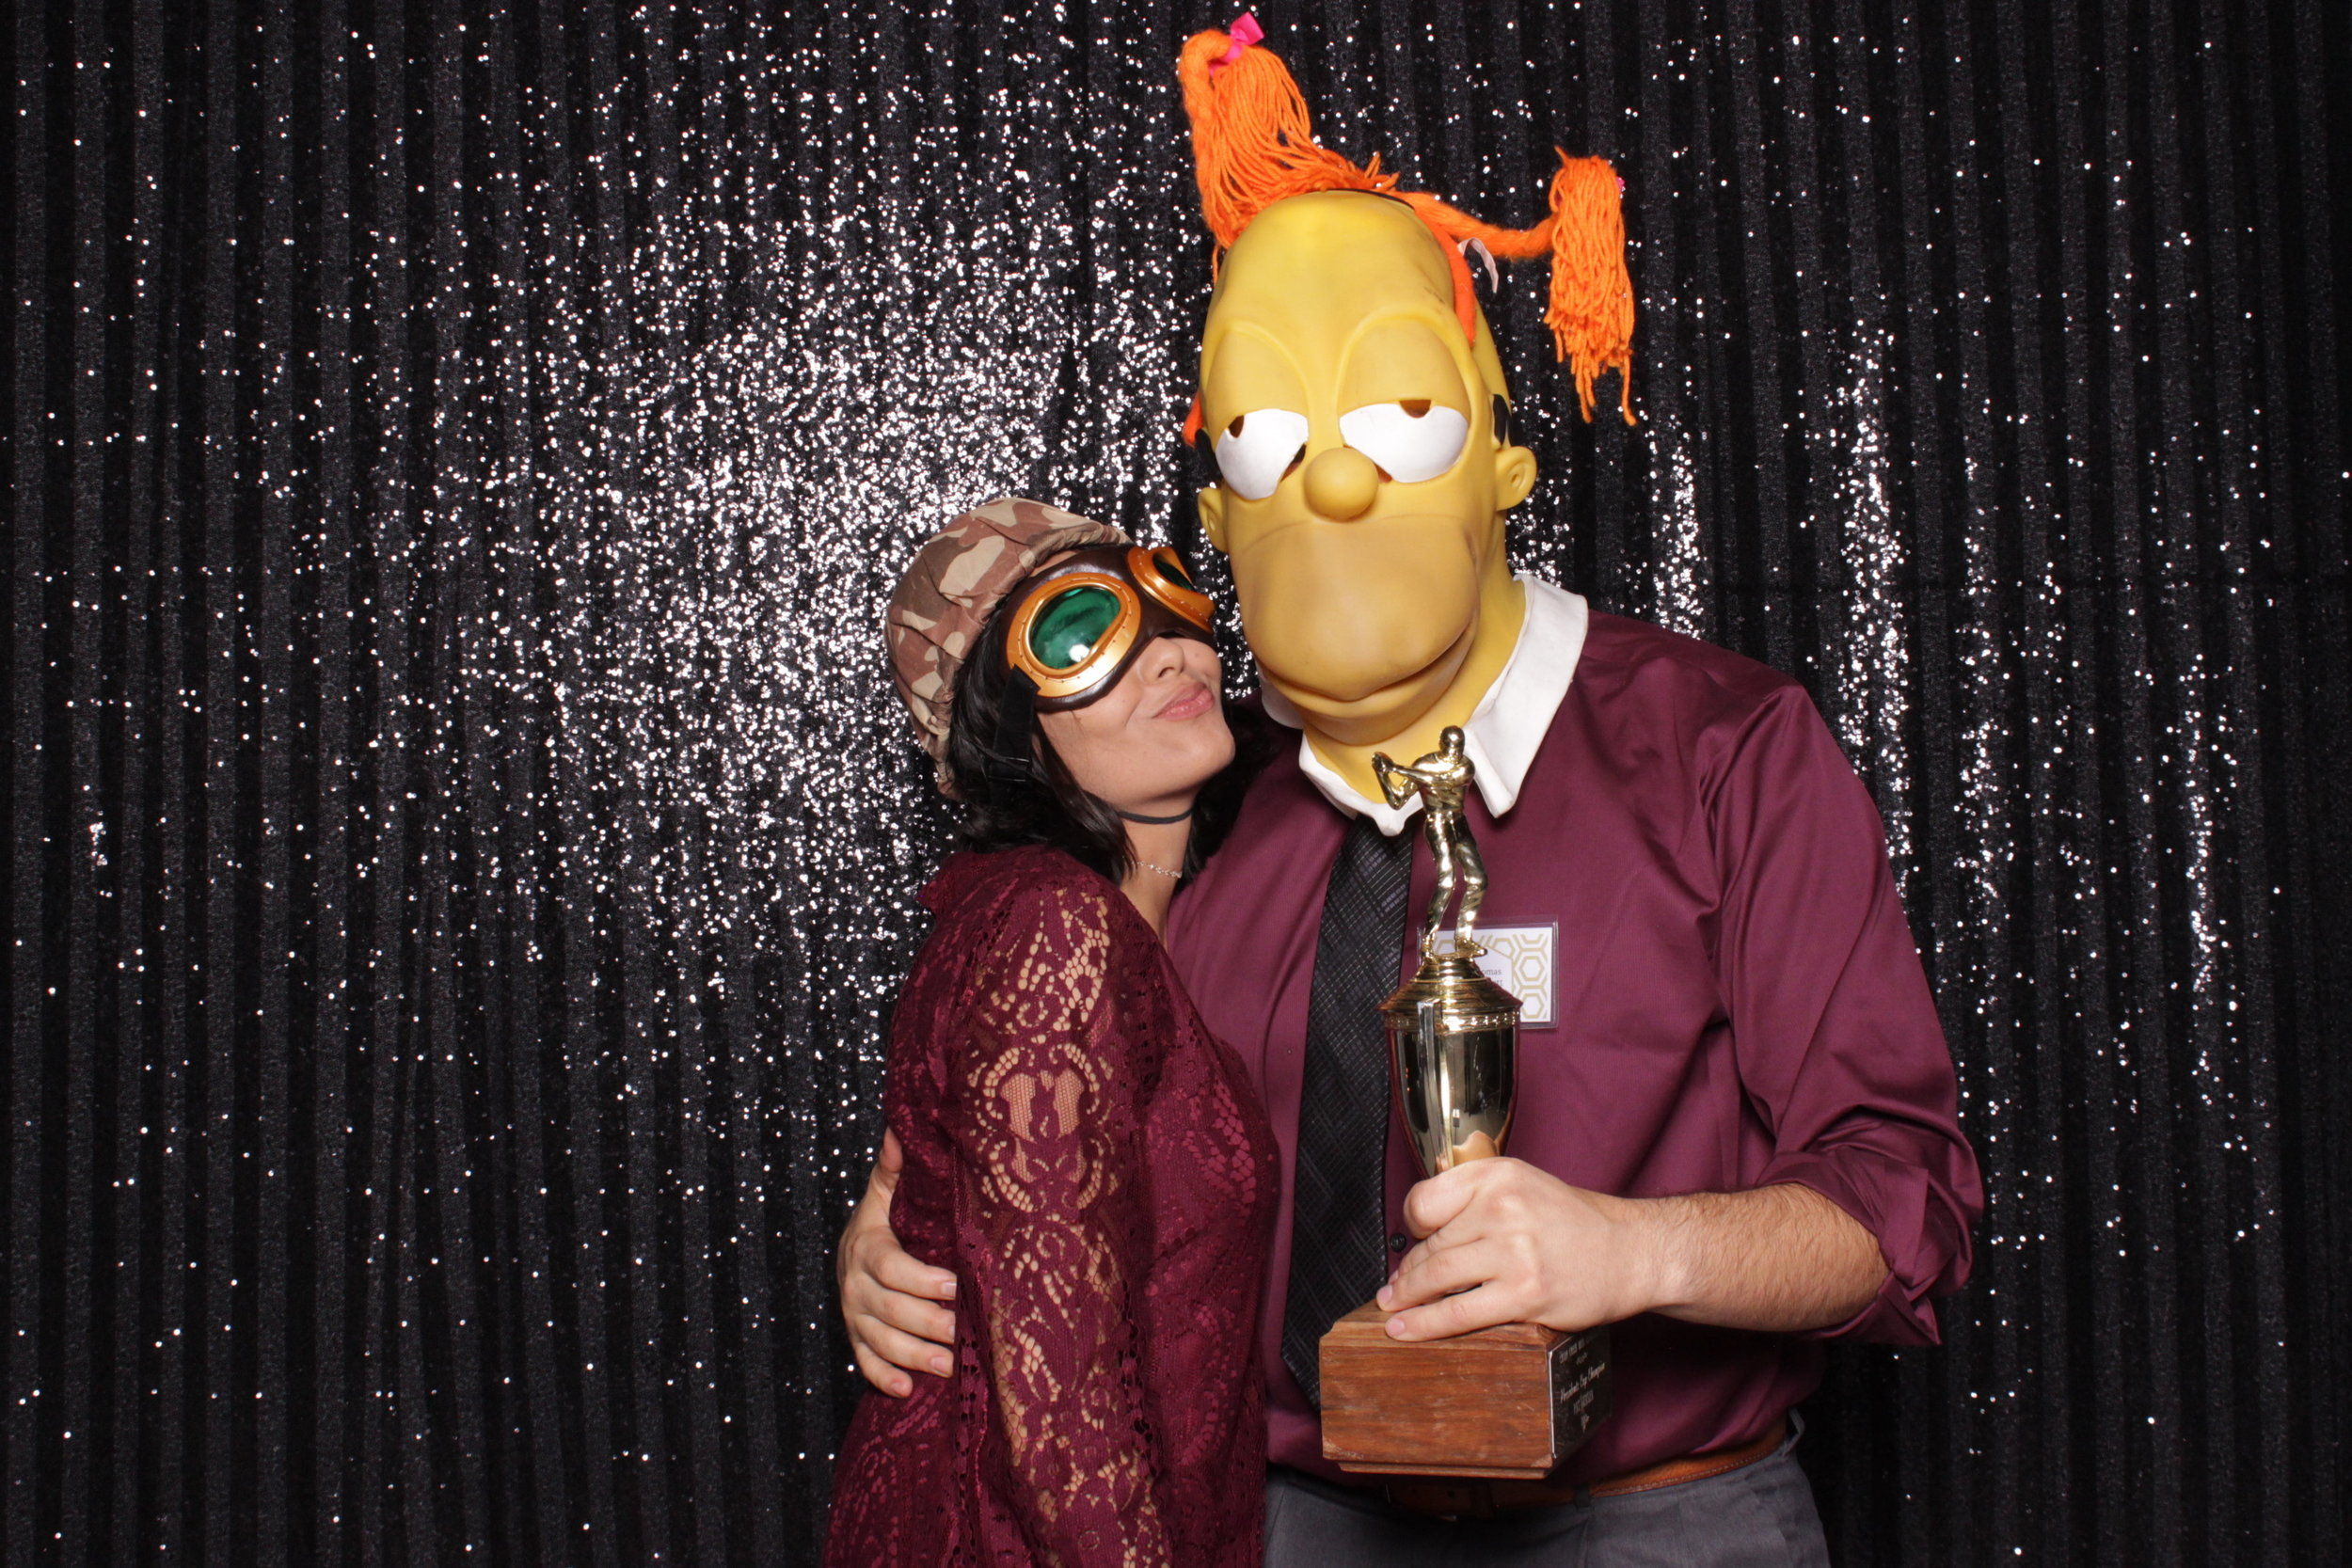 Chico-photo-booth-rental-online